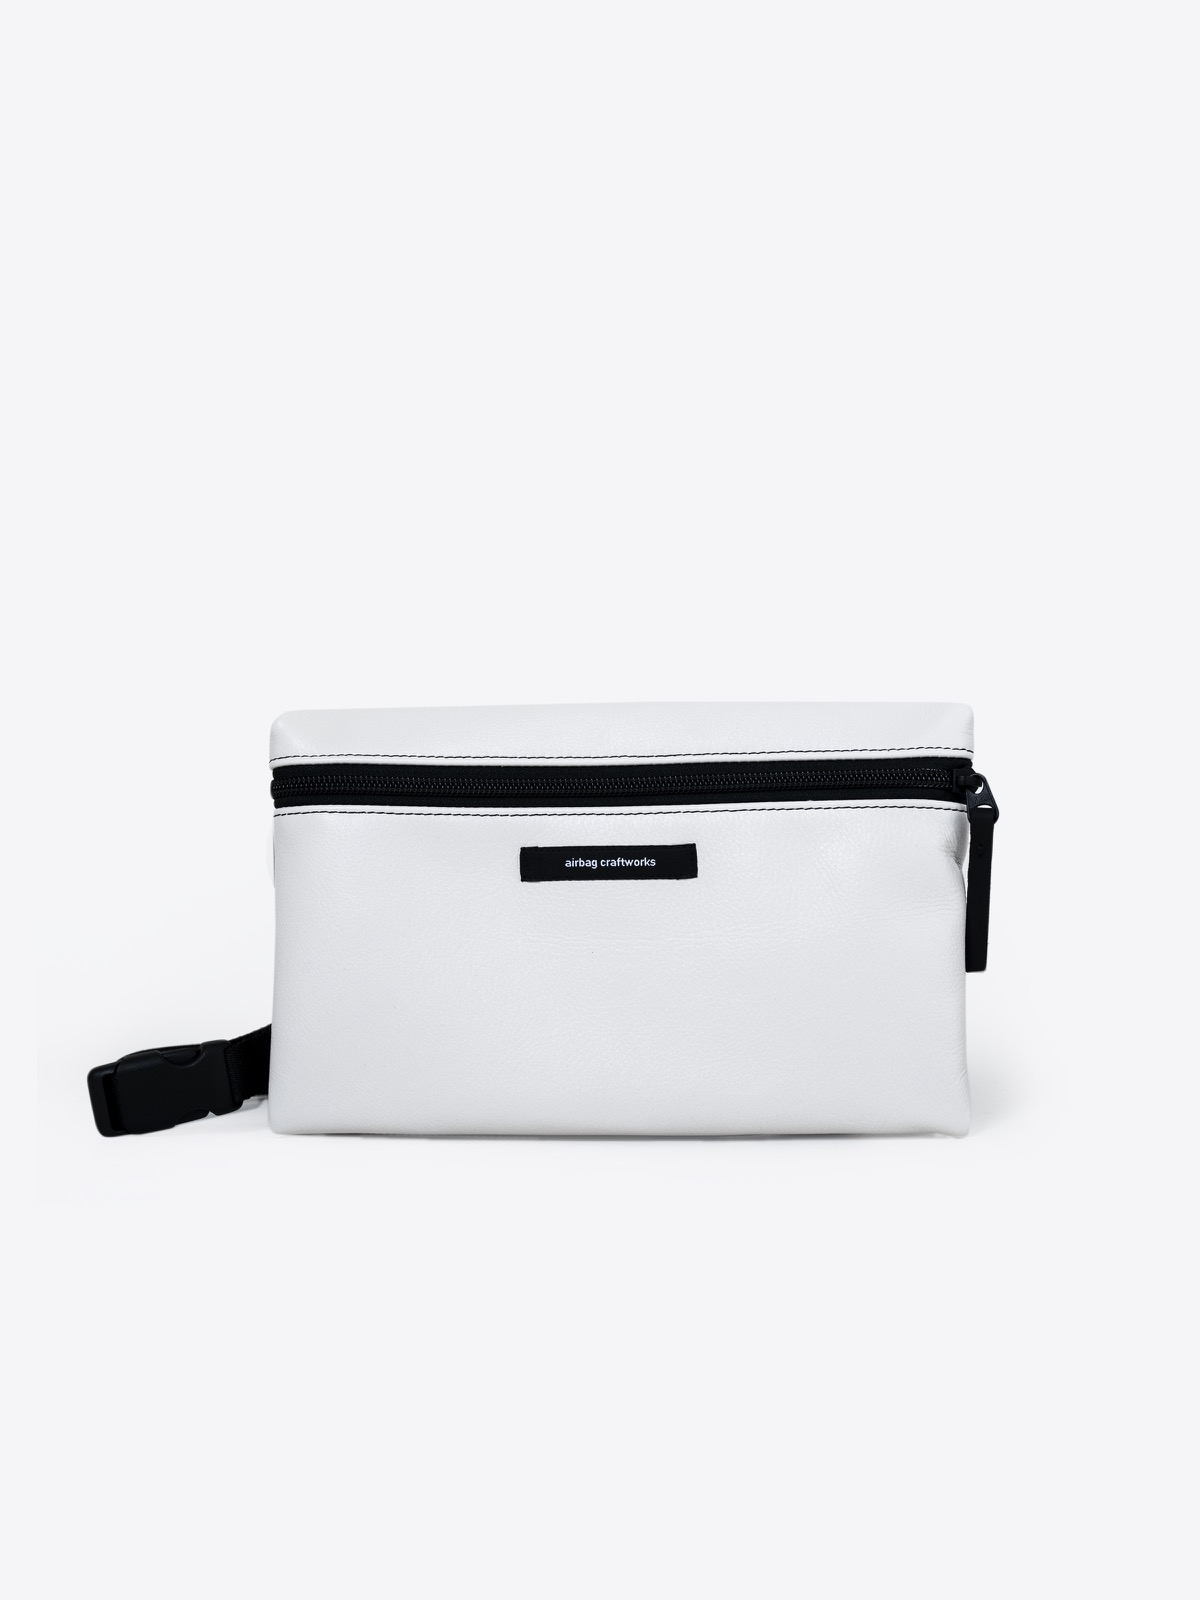 A2 dlx leather | white